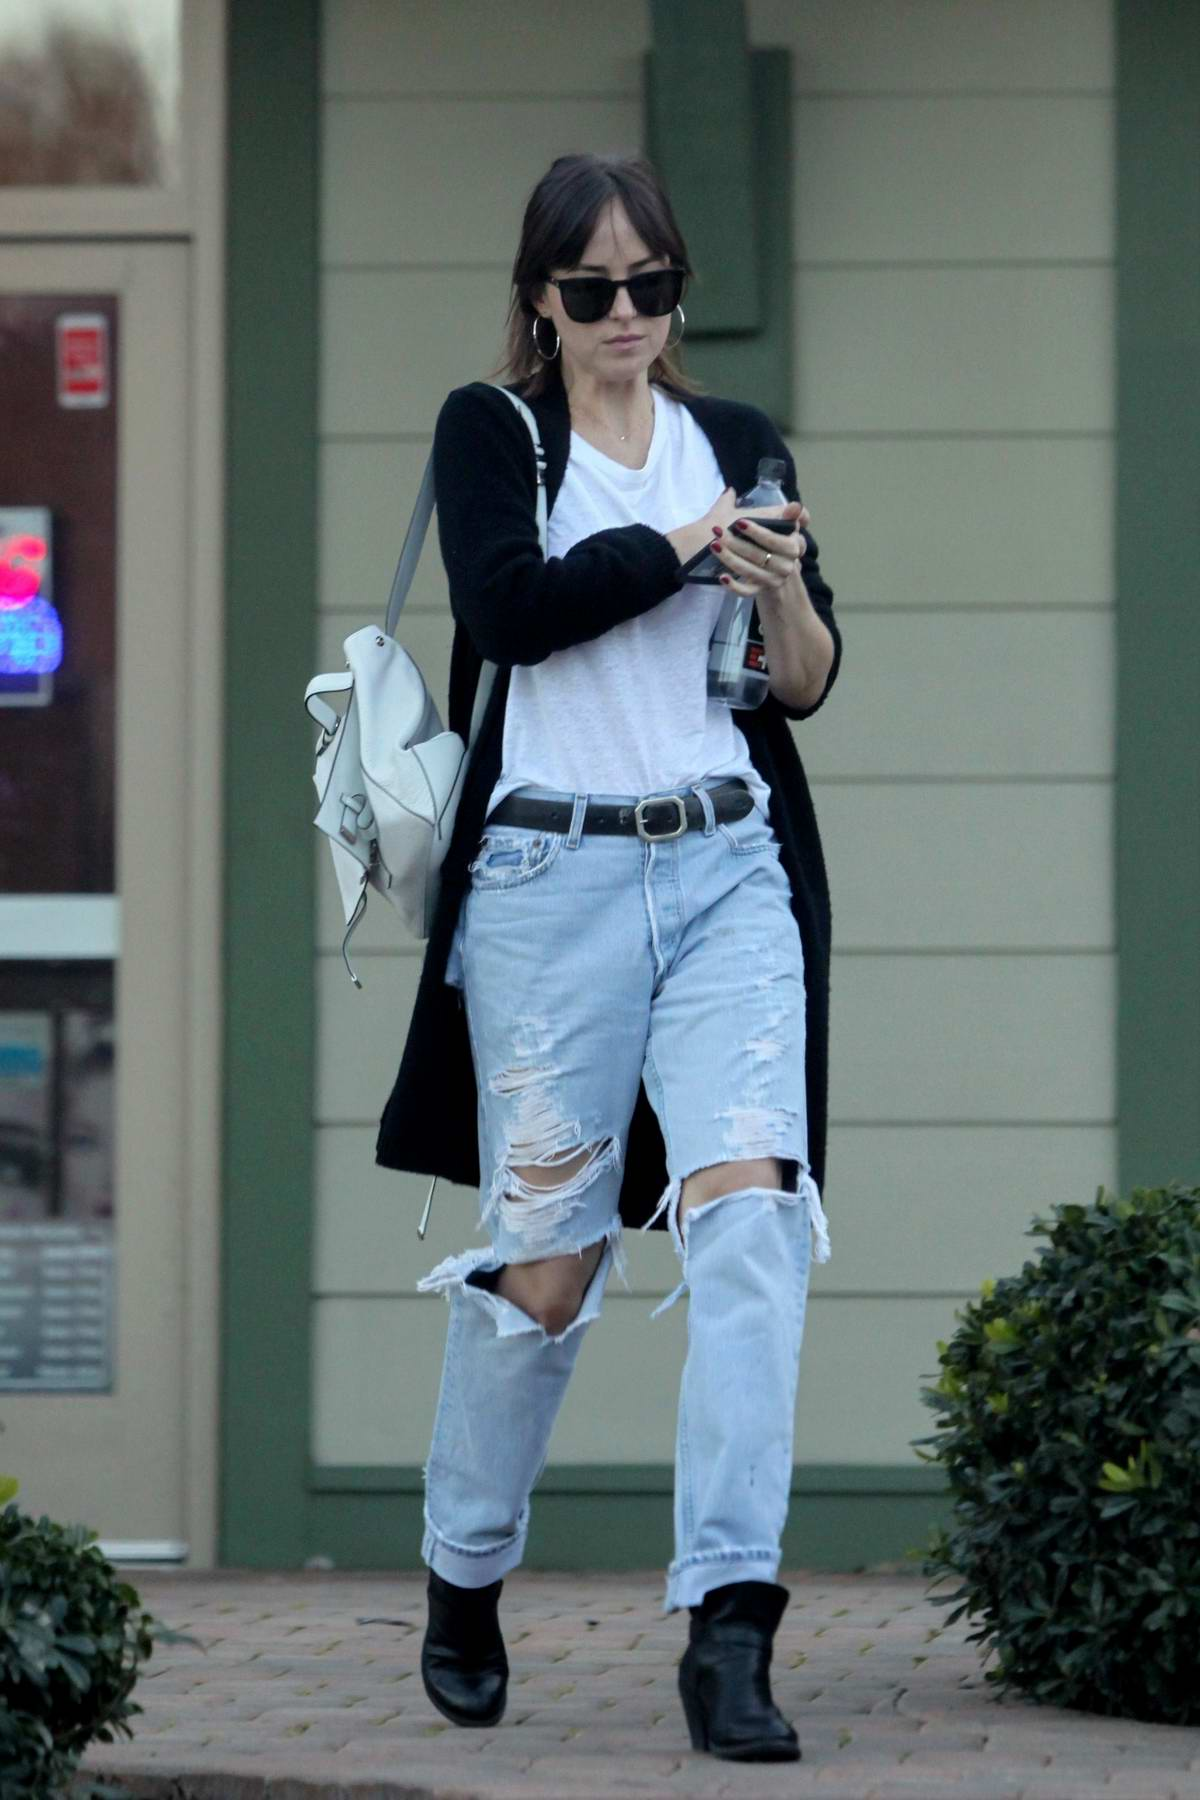 Dakota Johnson wears a white t-shirt, black cardigan and ripped jeans during her trip to a nail salon in Los Angeles